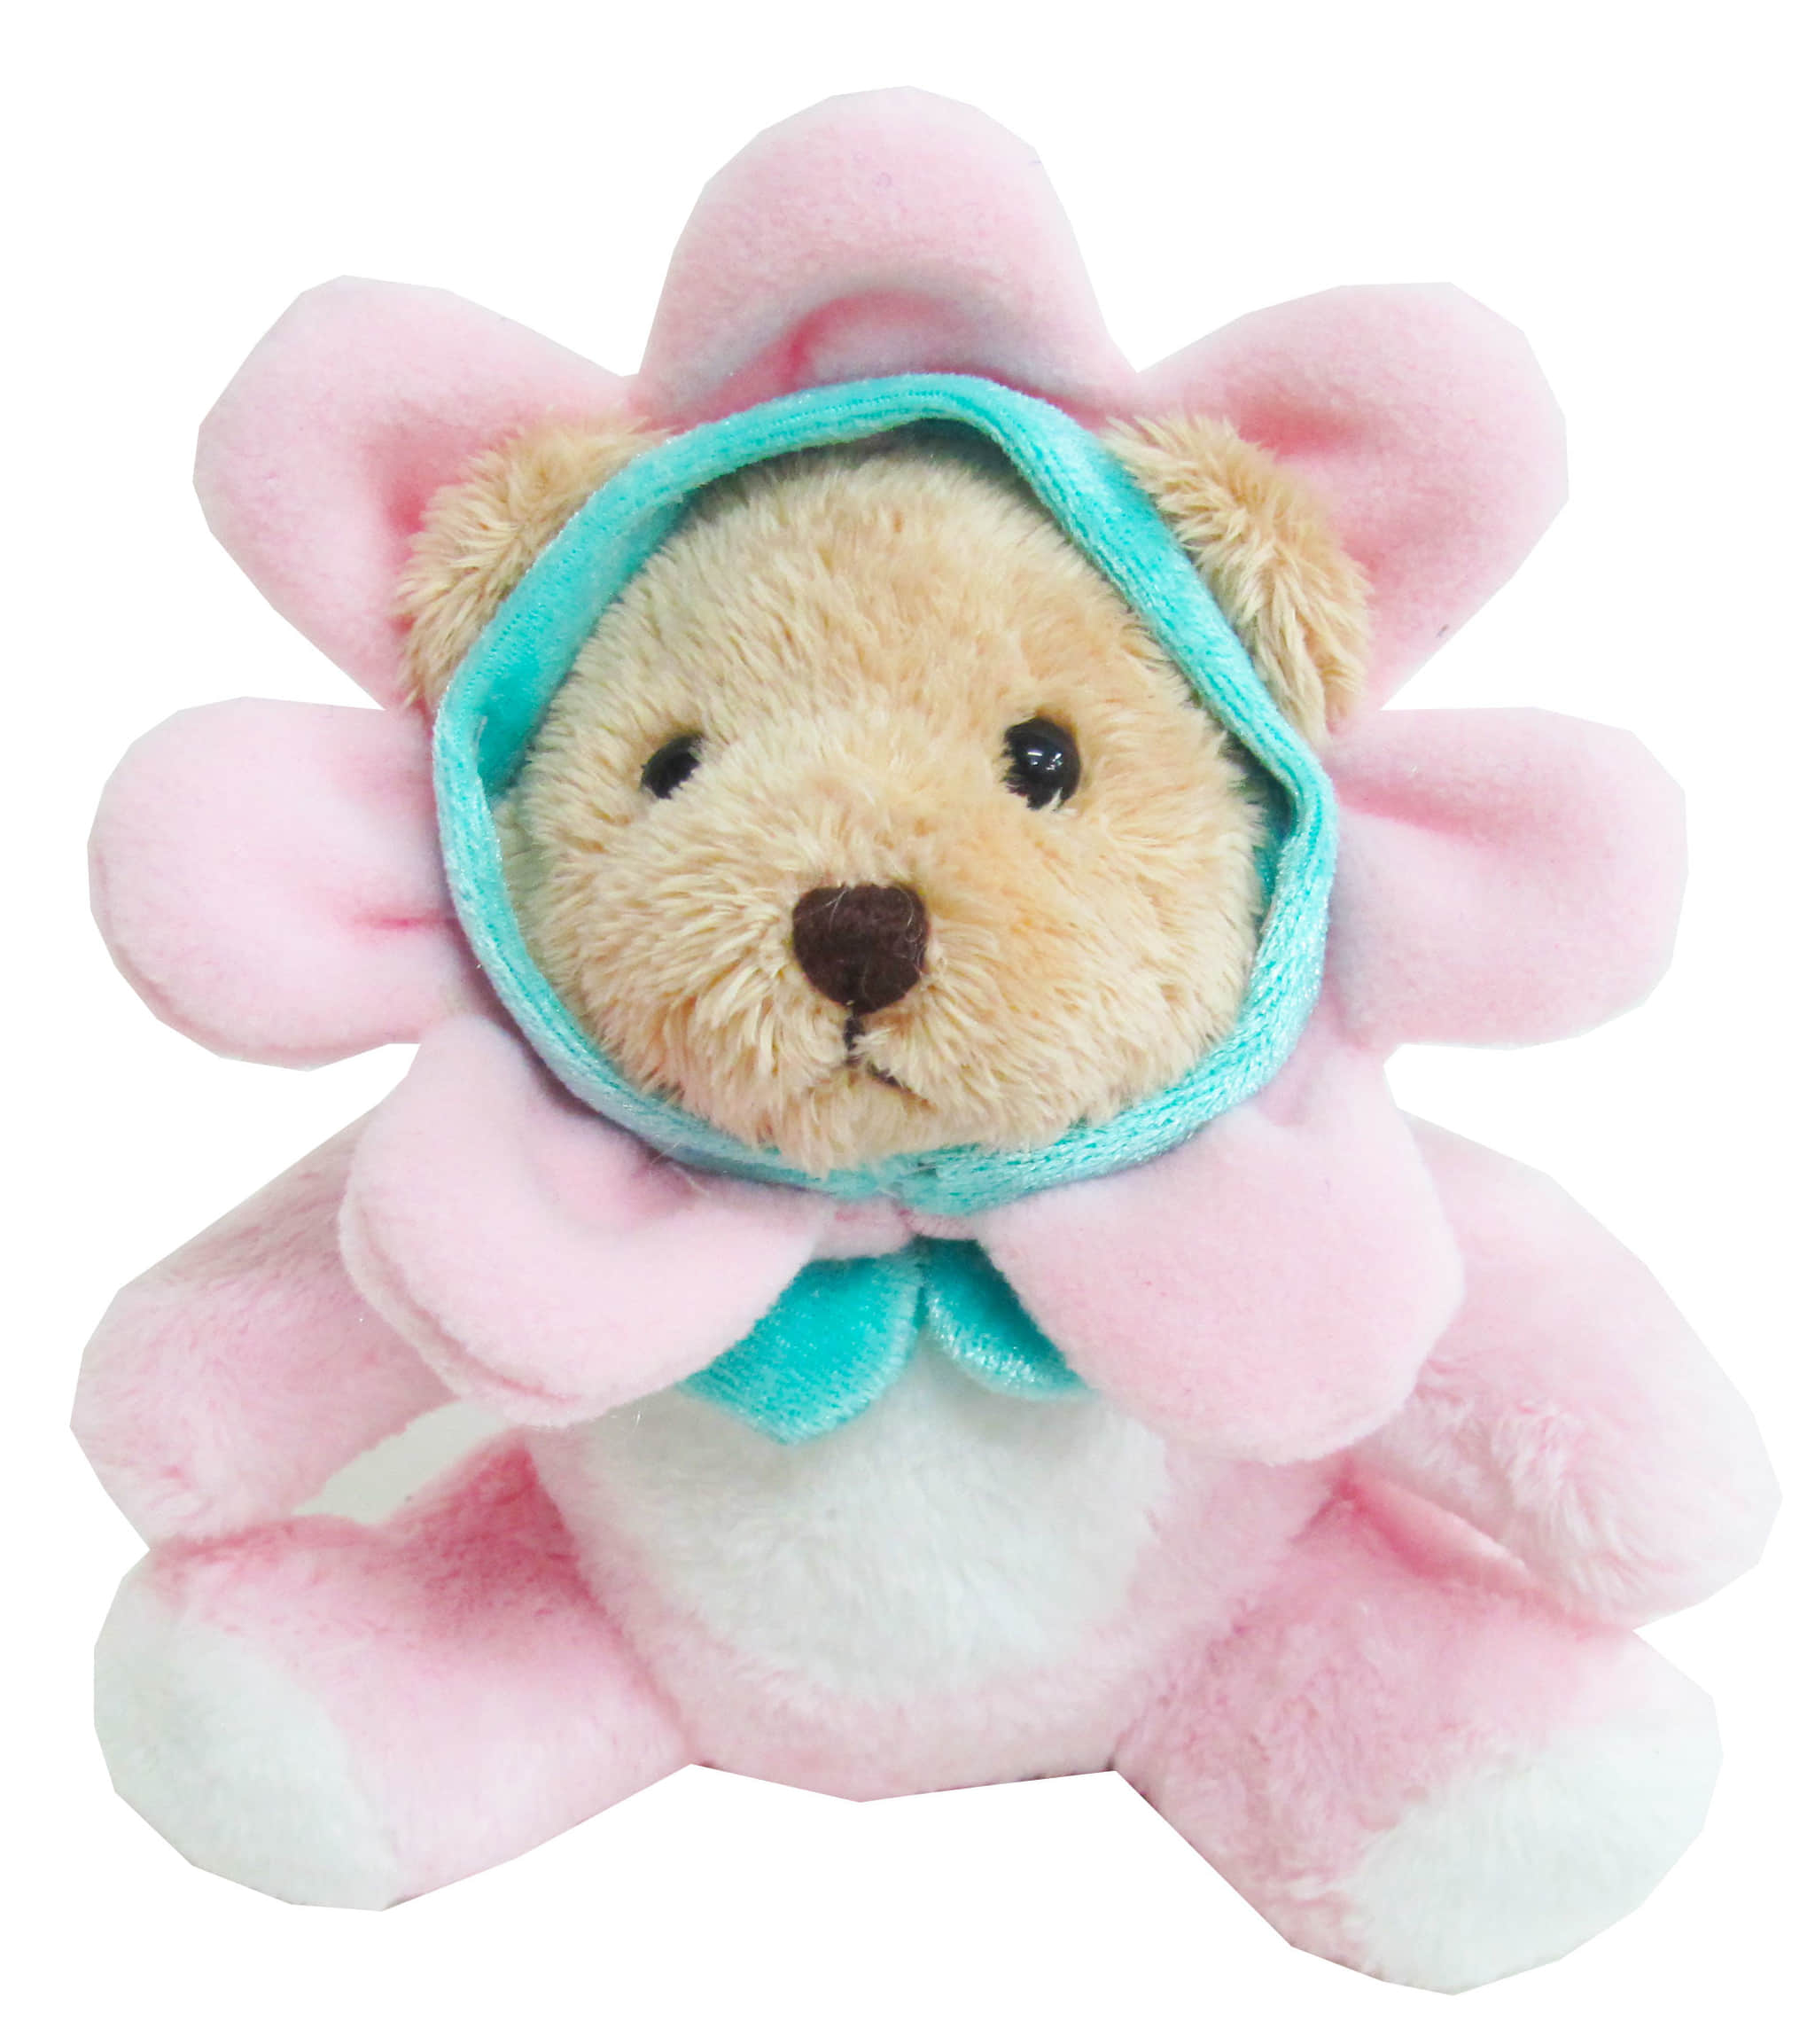 "TEDDY HOUSE BONEKA TEDDY BEAR TEDDY FLORA 05"" FANTASY"